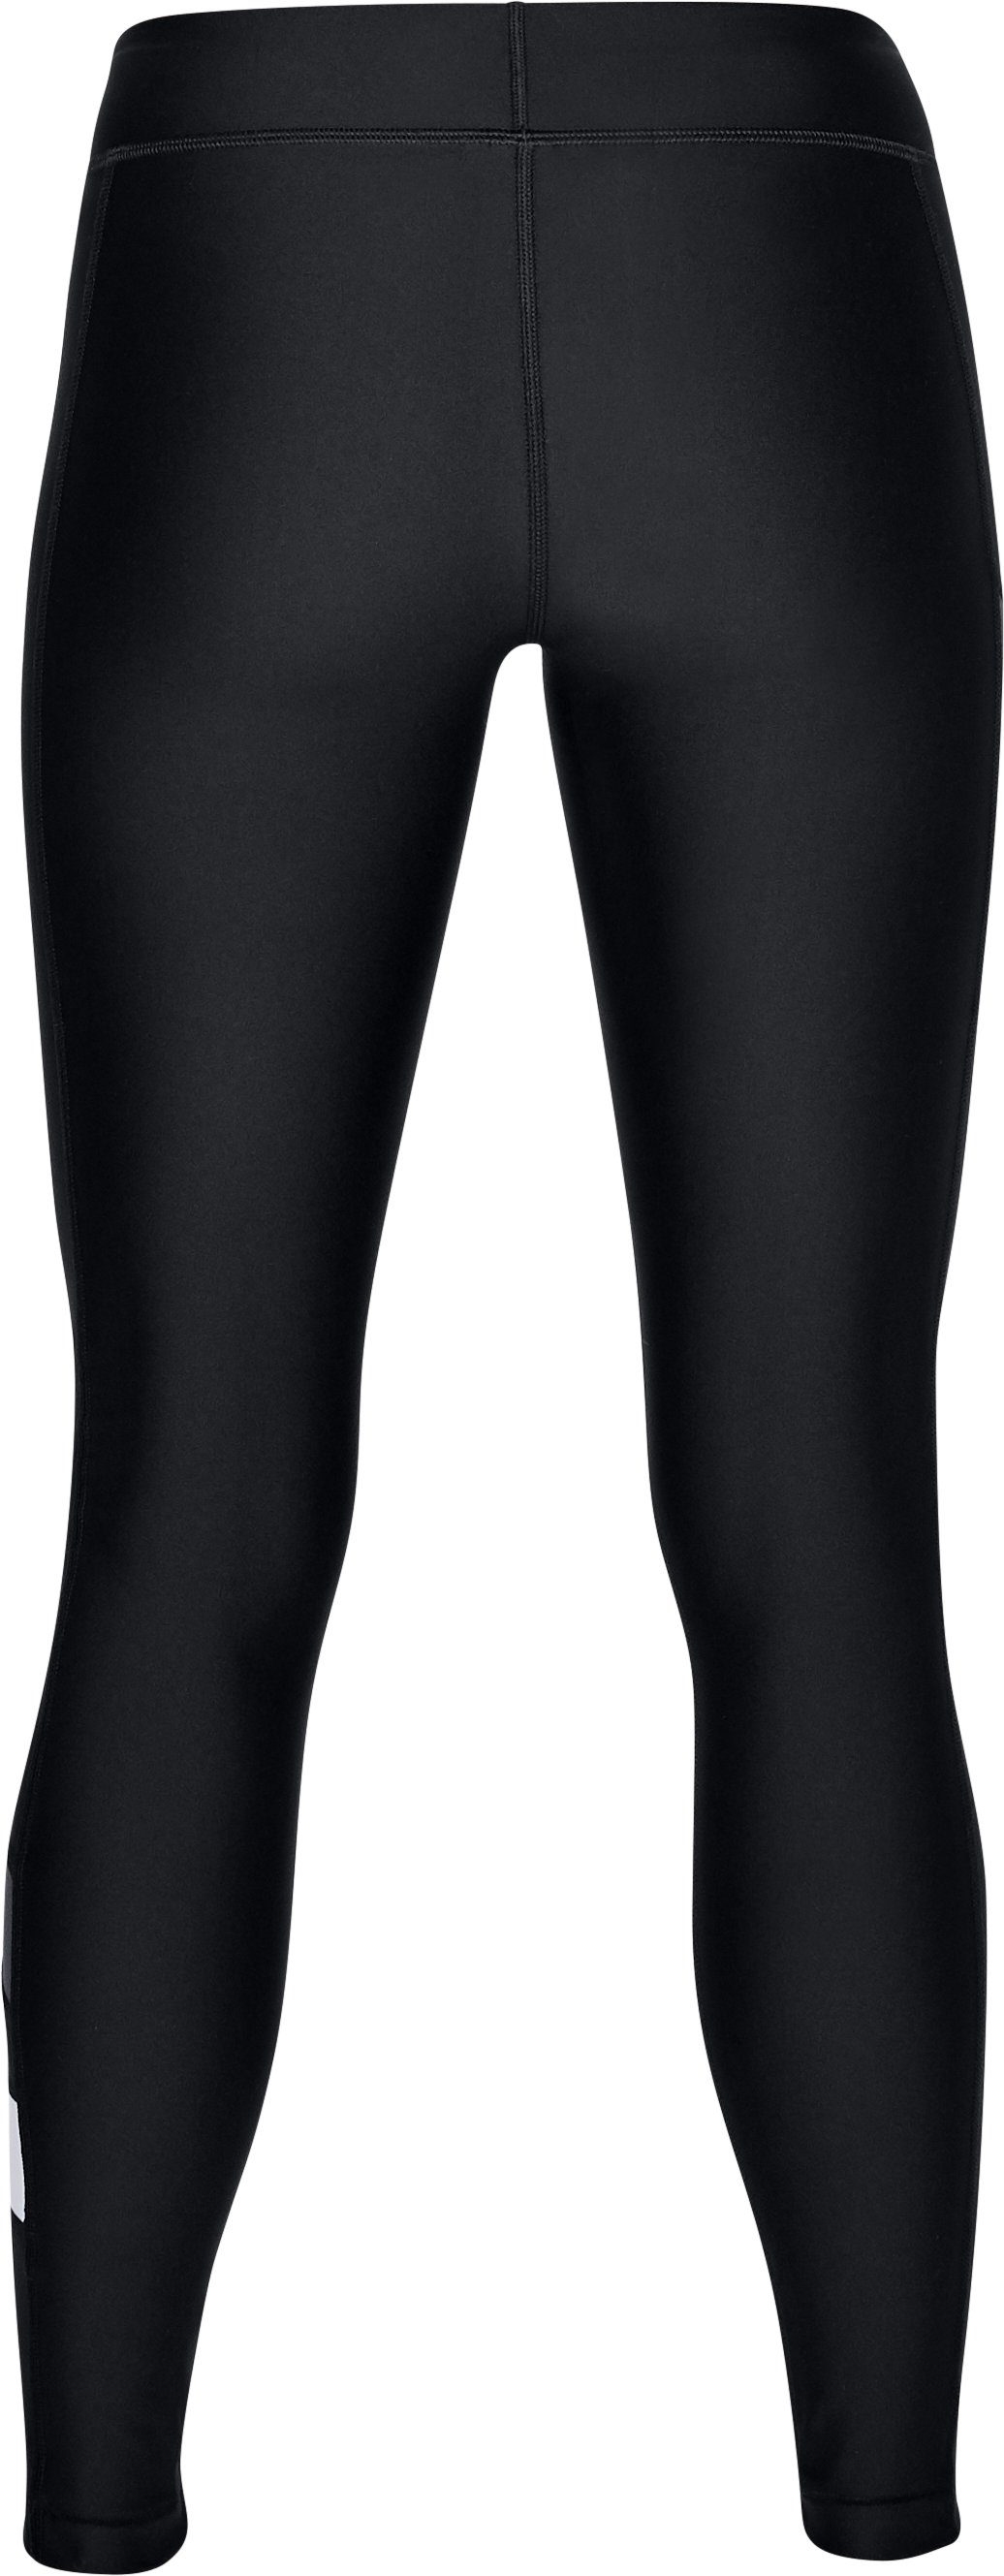 Women's HeatGear® Armour Leggings, Black ,